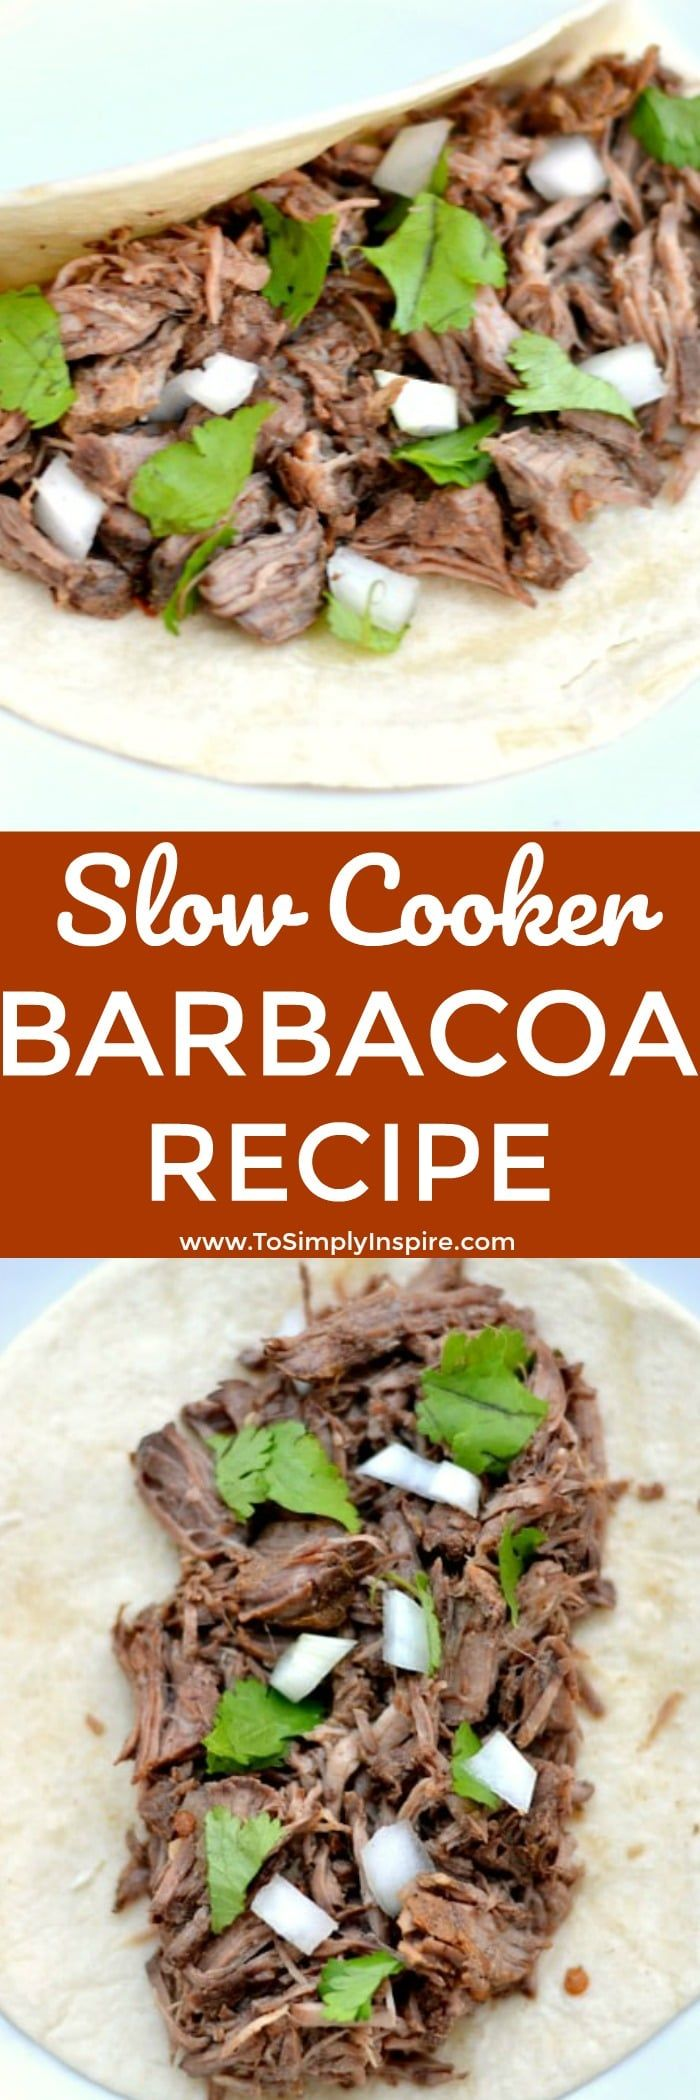 Barbacoa is an authentic, simple, slow cooker meal that makes the most tender, delicious barbacoa beef.  | www.ToSimplyInspire.com #barbacoa #slowcooker #easyrecipe